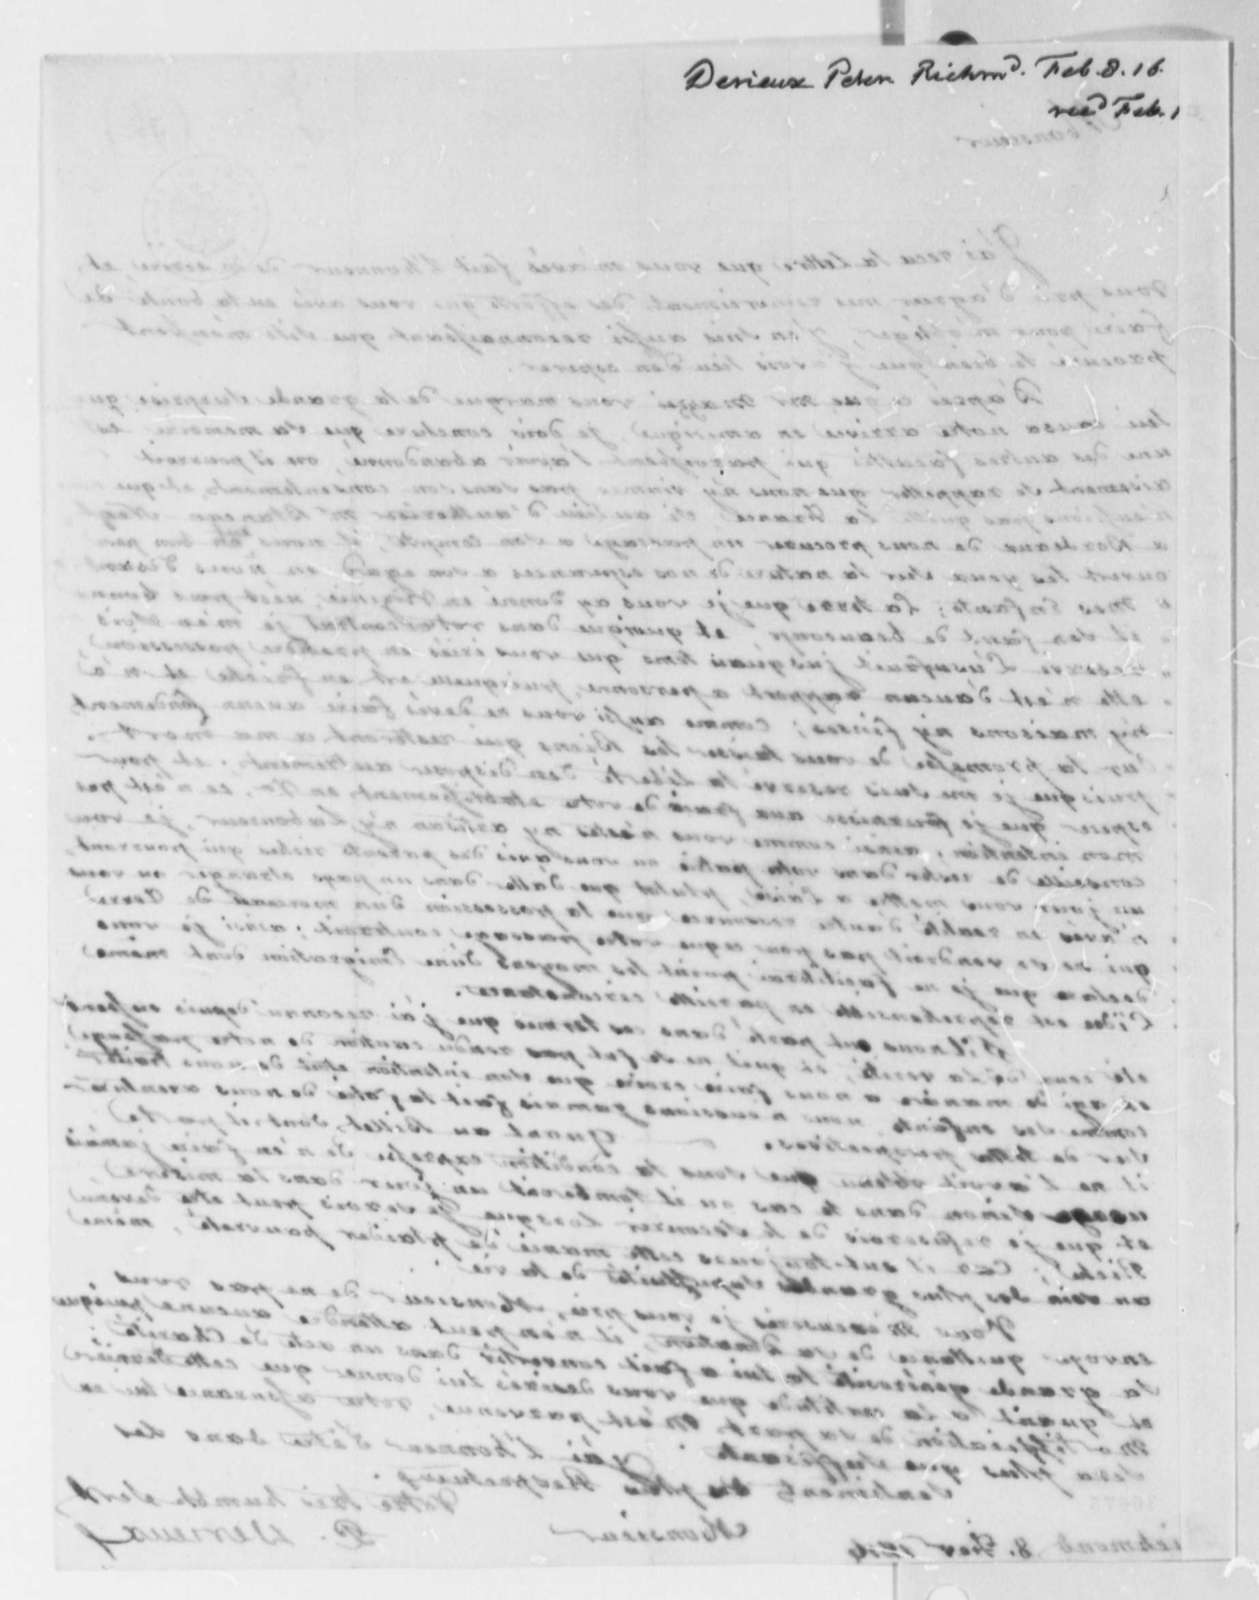 Justin Pierre Plumard Derieux to Thomas Jefferson, February 8, 1816, in French